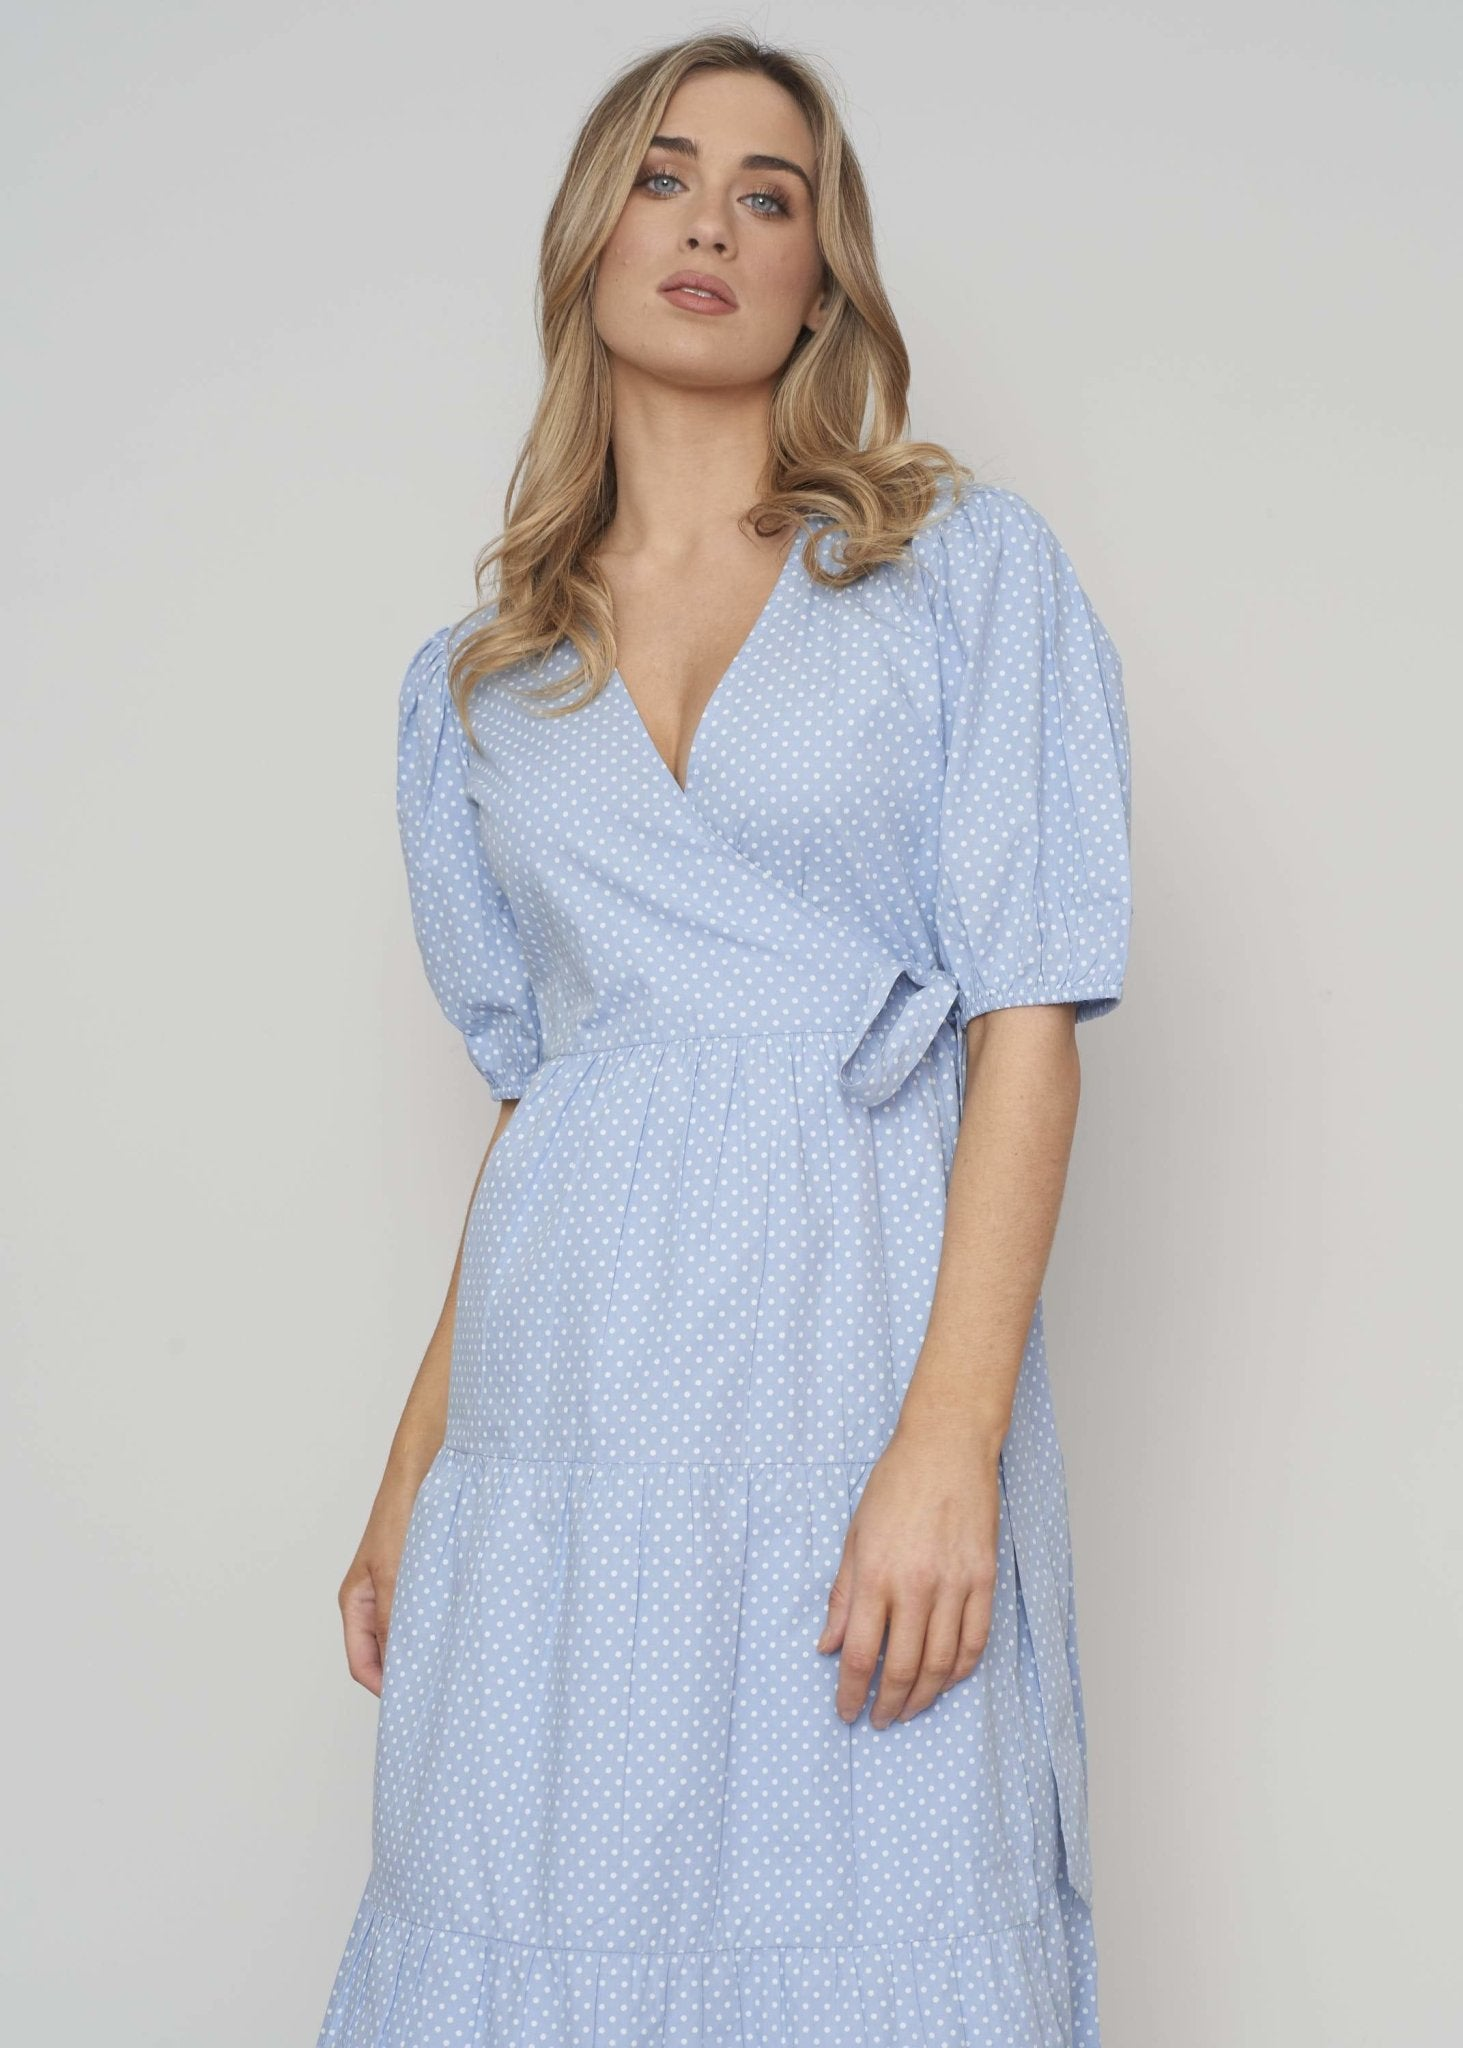 Freya Polka Dot Wrap Dress In Blue - The Walk in Wardrobe